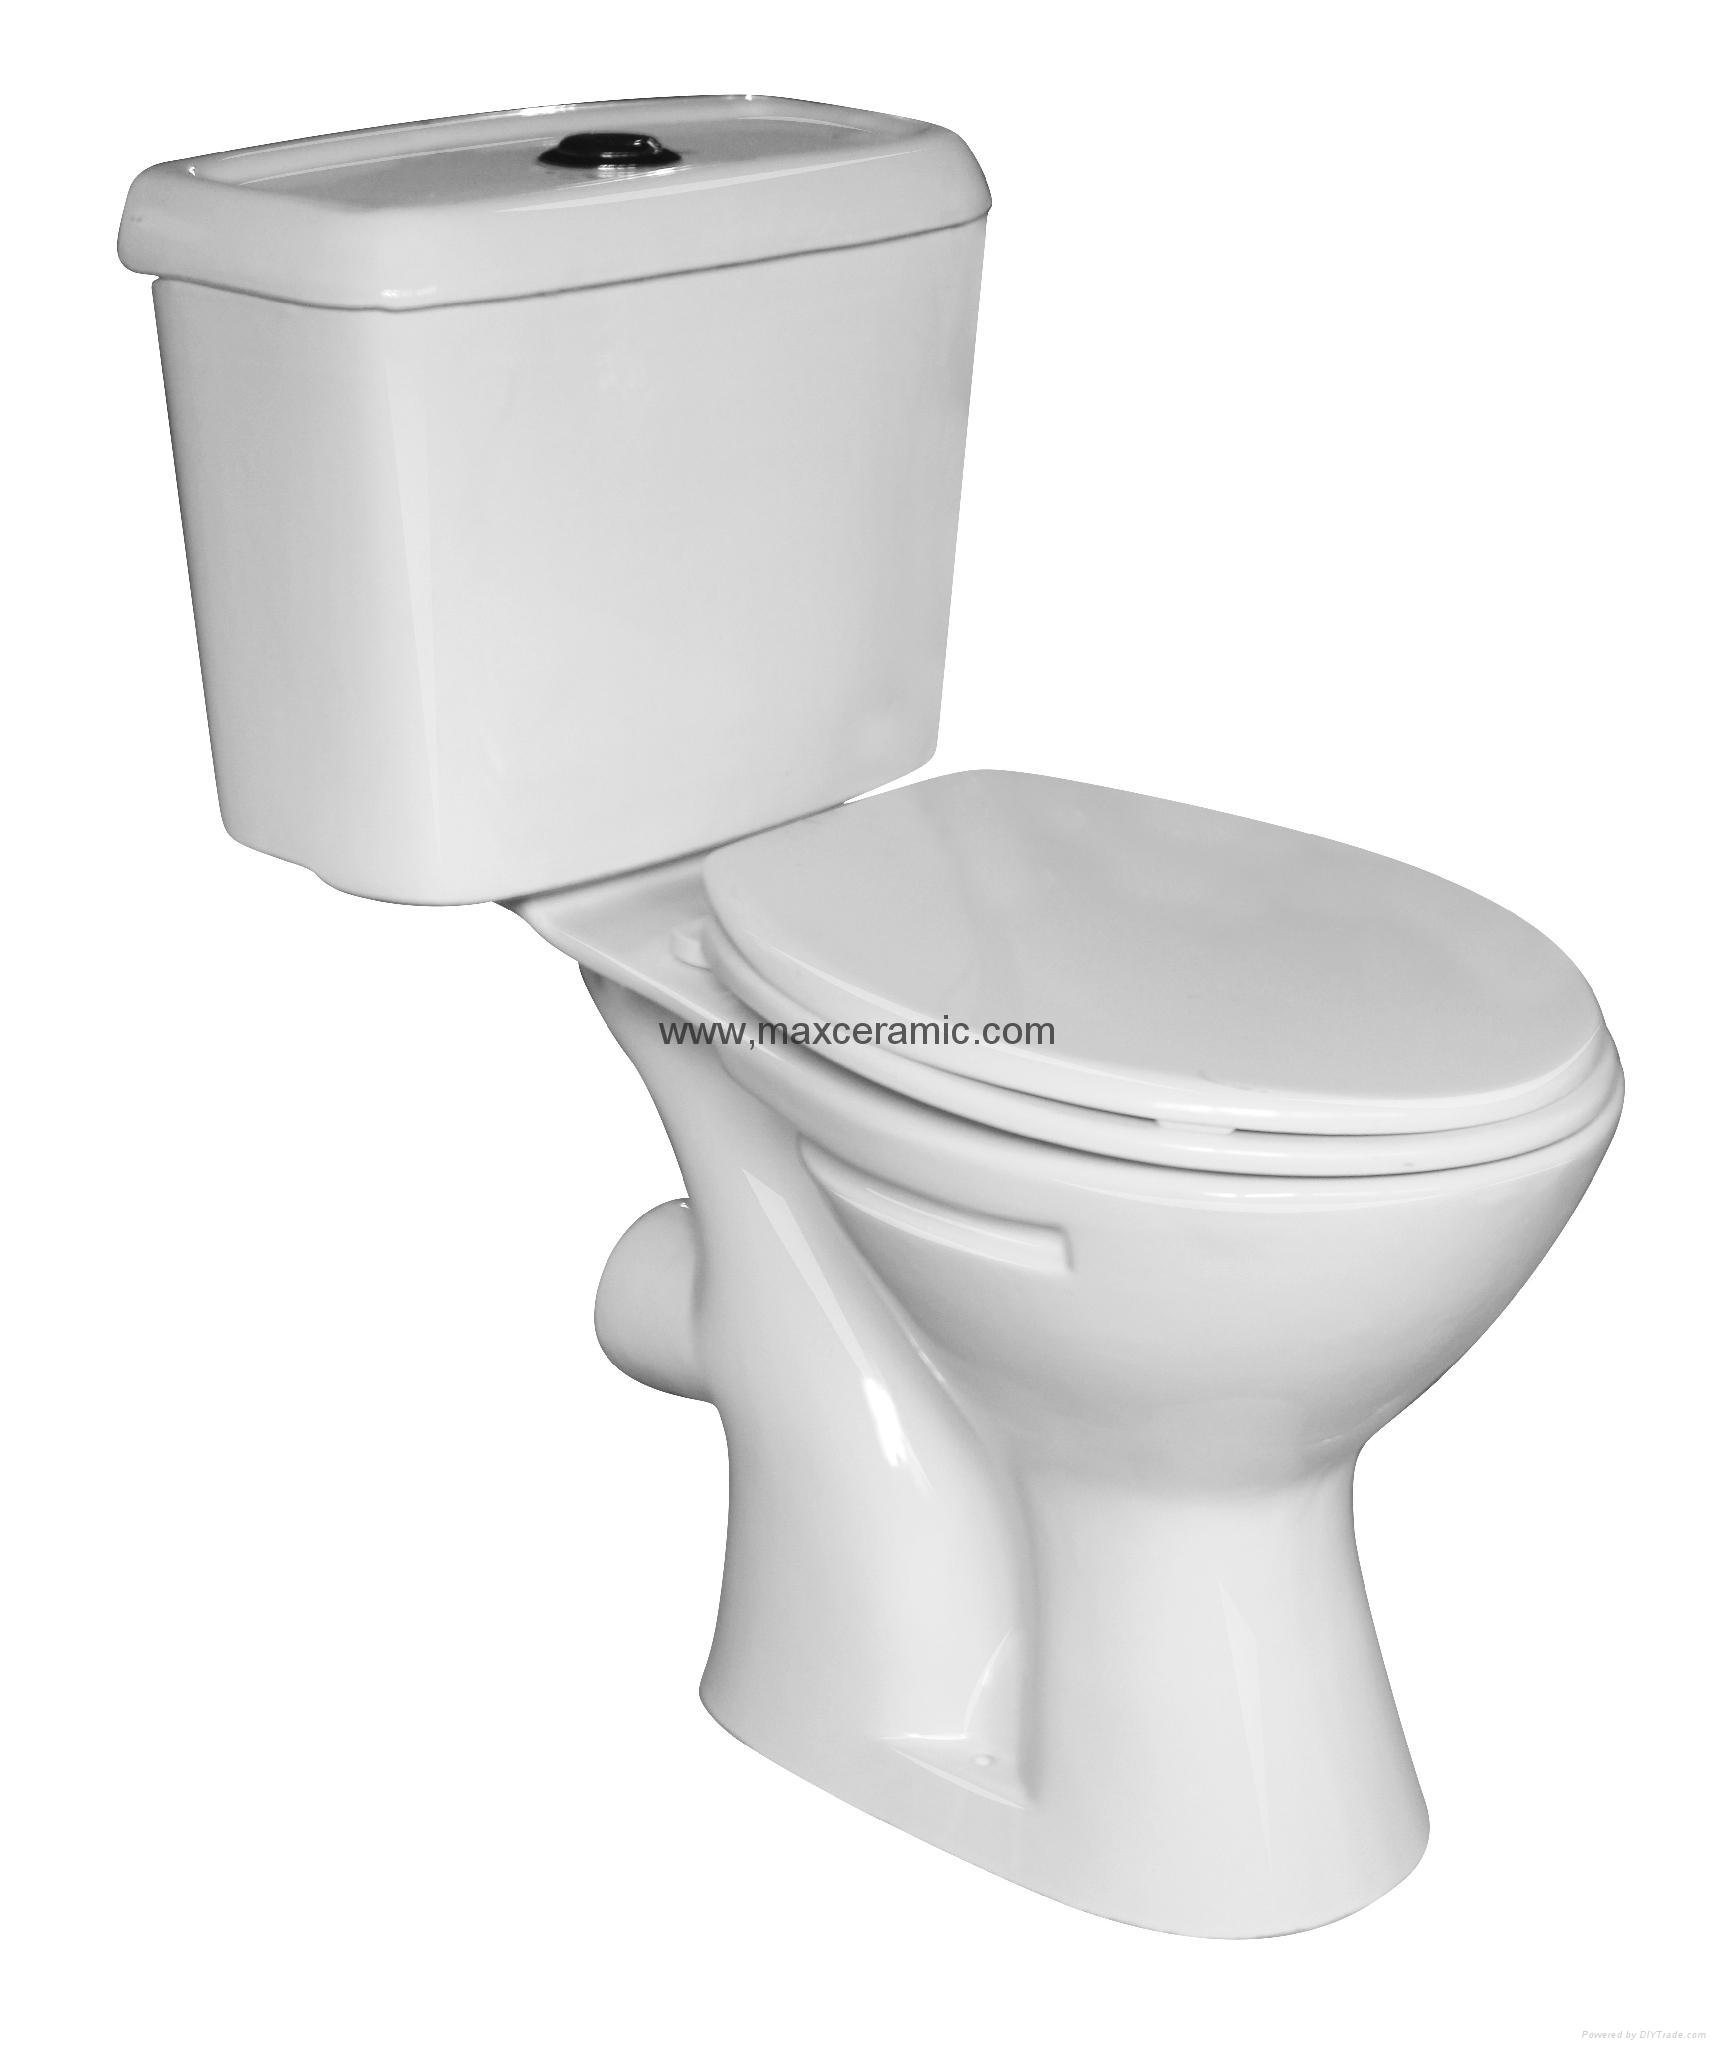 Twyford two piece toilet - T1688 - Maxceramic (China Manufacturer ...